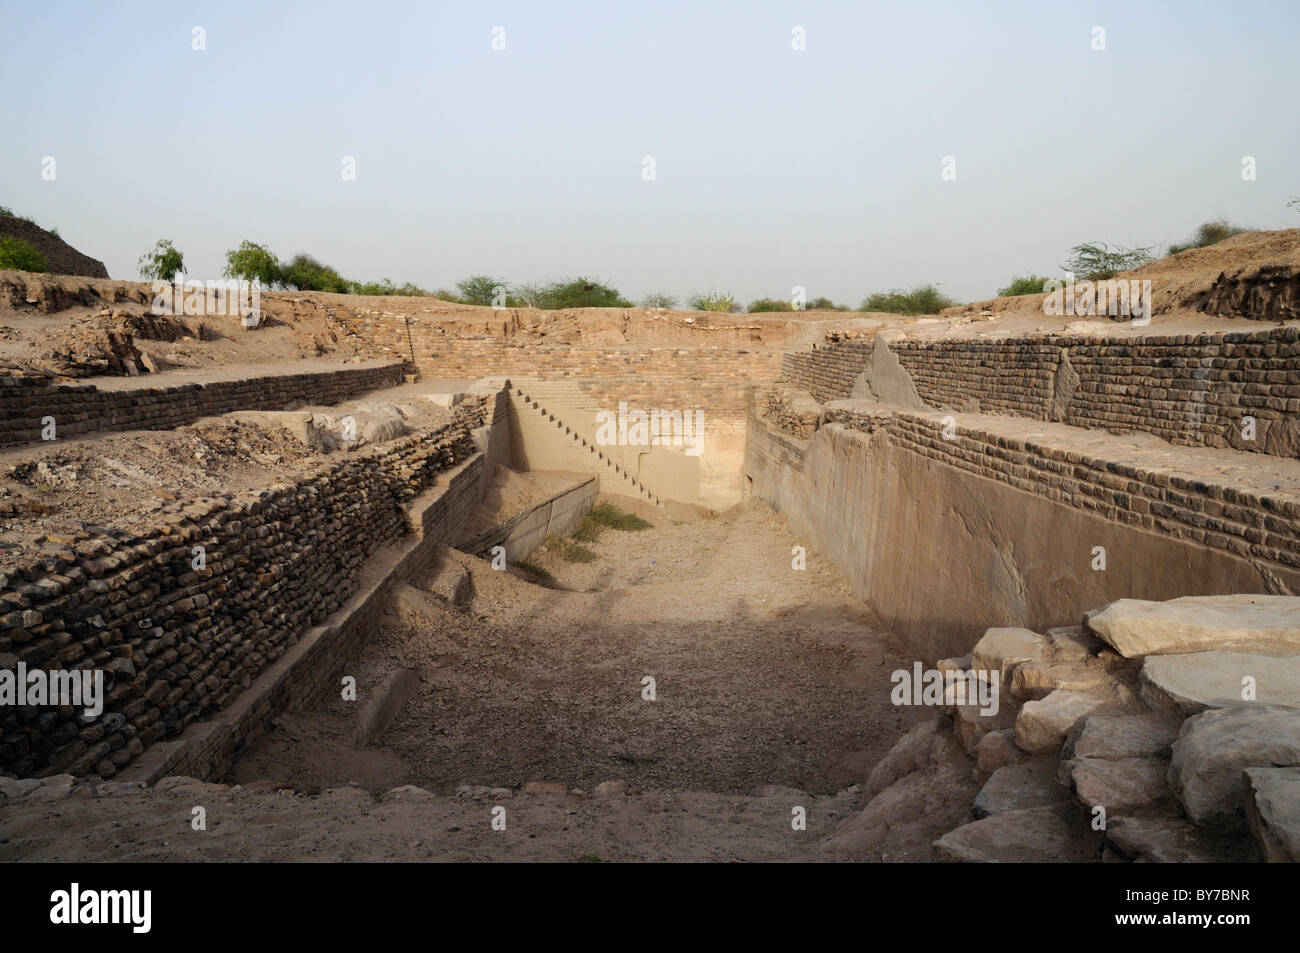 Dholavira, an ancient city, is one of the largest archaeological sites in India, belonging to the Indus Valley Civilization. - Stock Image